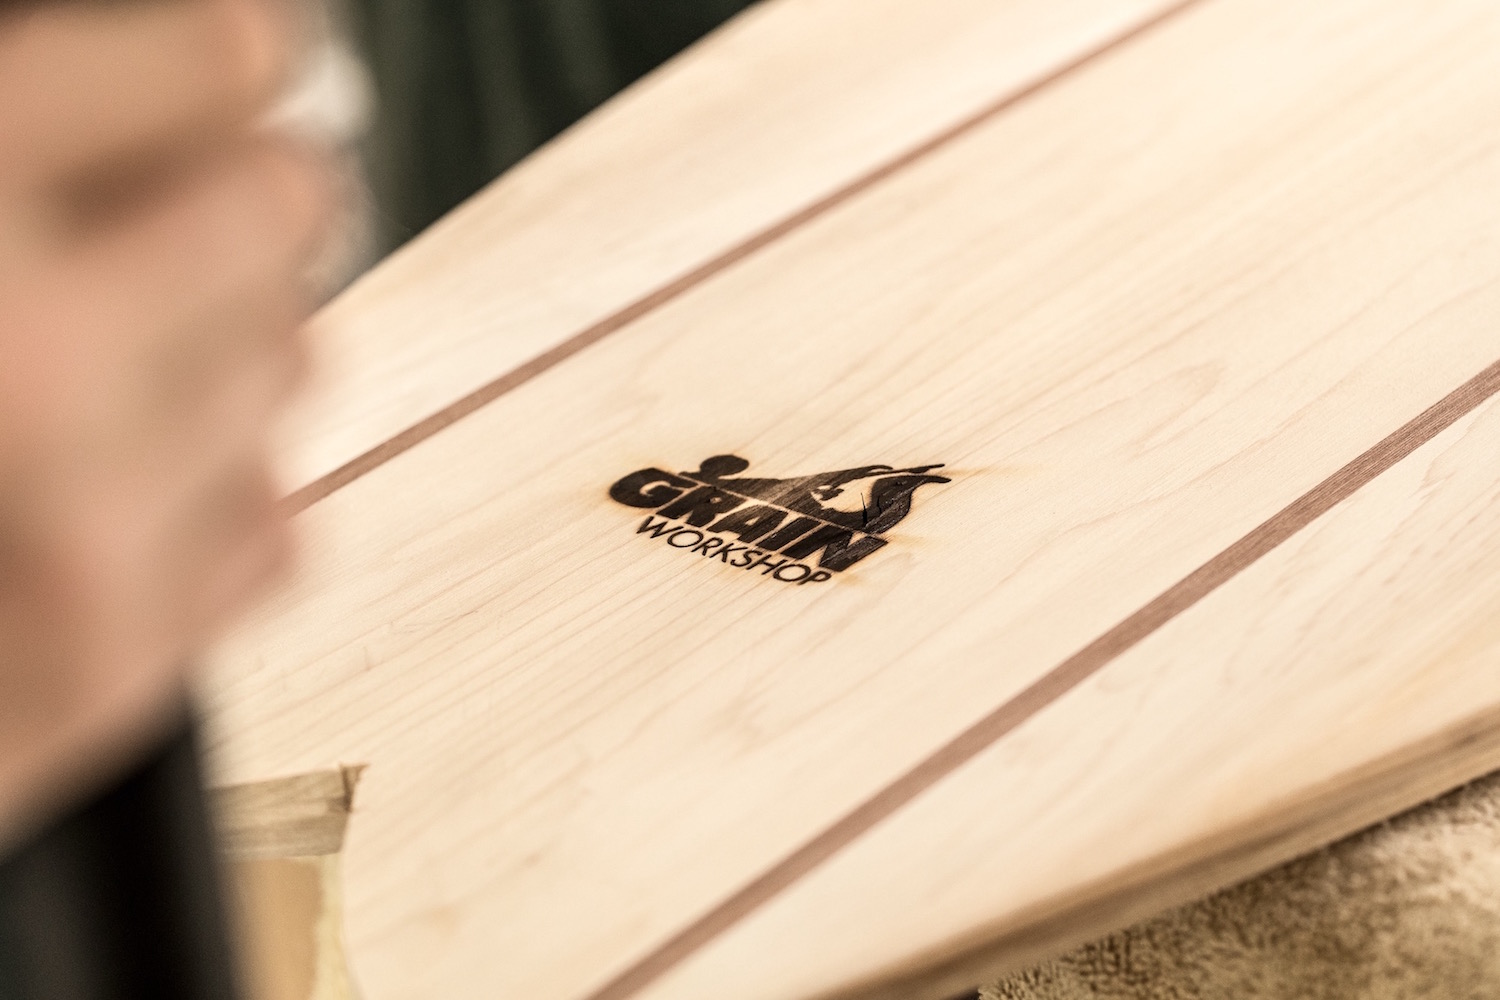 A surfboard freshly branded with the Grain Workshop logo